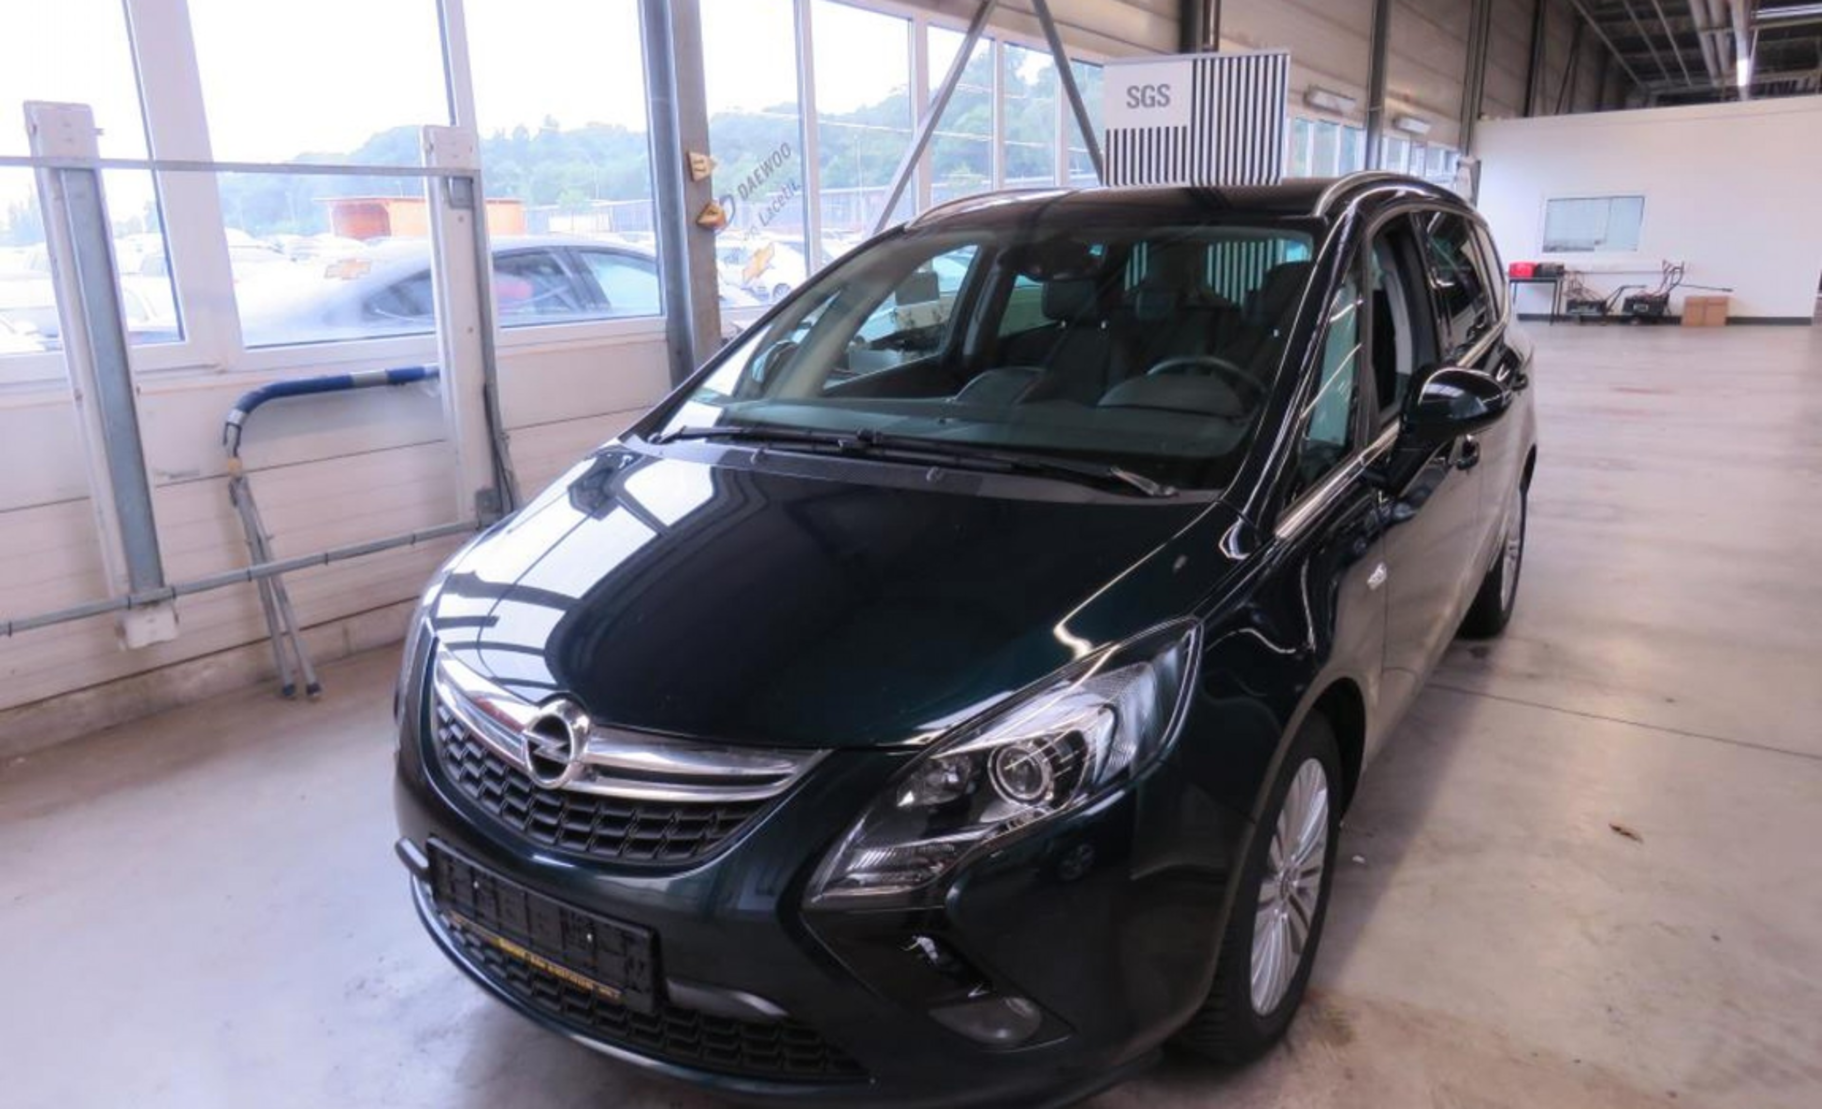 Opel Zafira Tourer 1.6 CDTI ecoFLEX Innovation (622608) detail1